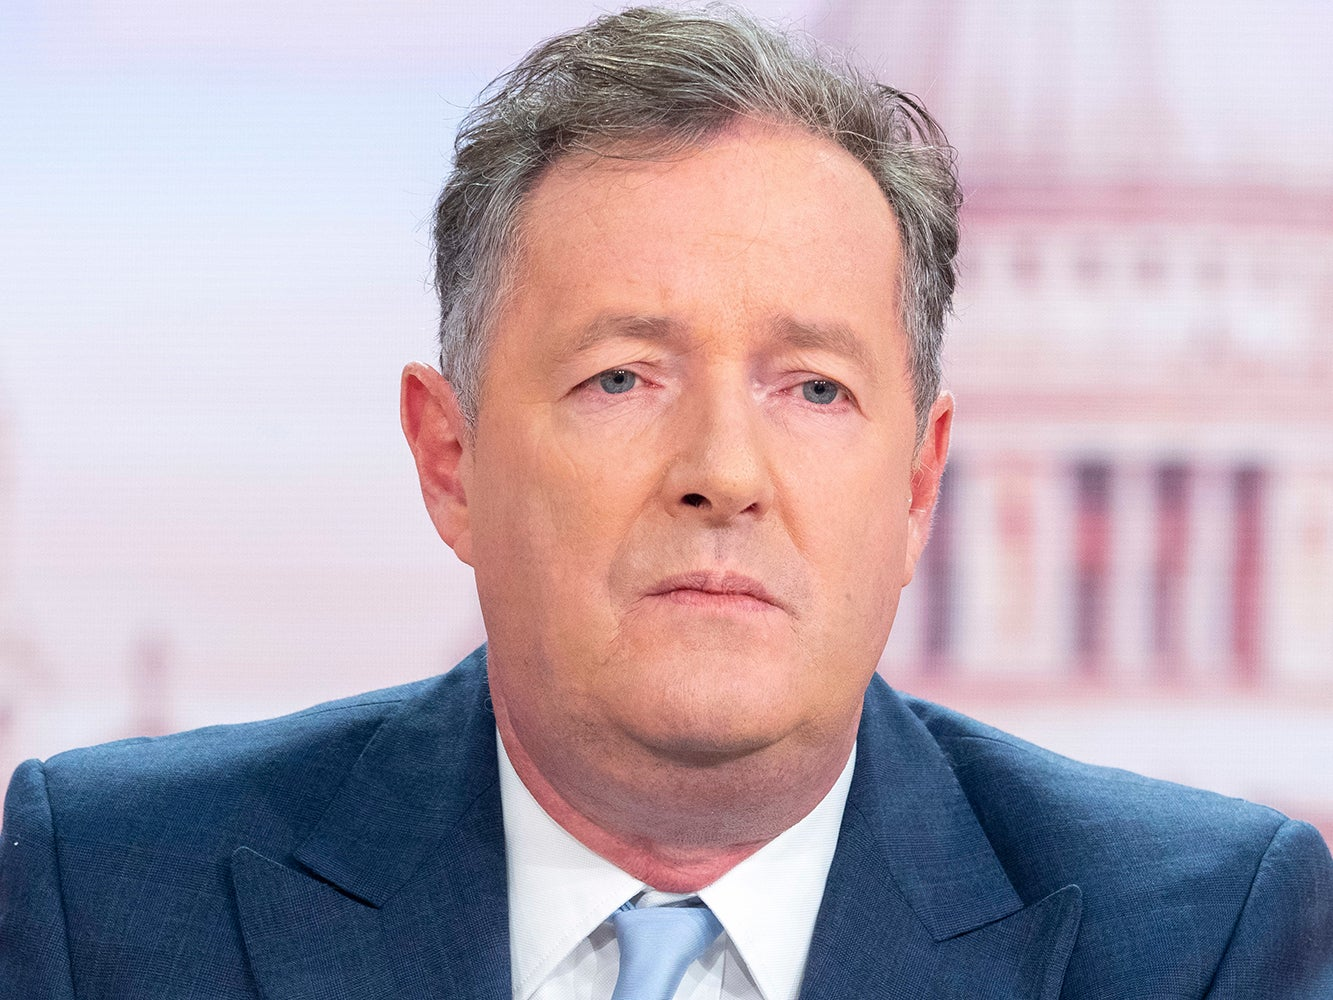 Piers Morgan tells Lily Allen to 'f*** off' after she says racism caused Boris Johnson's general election win